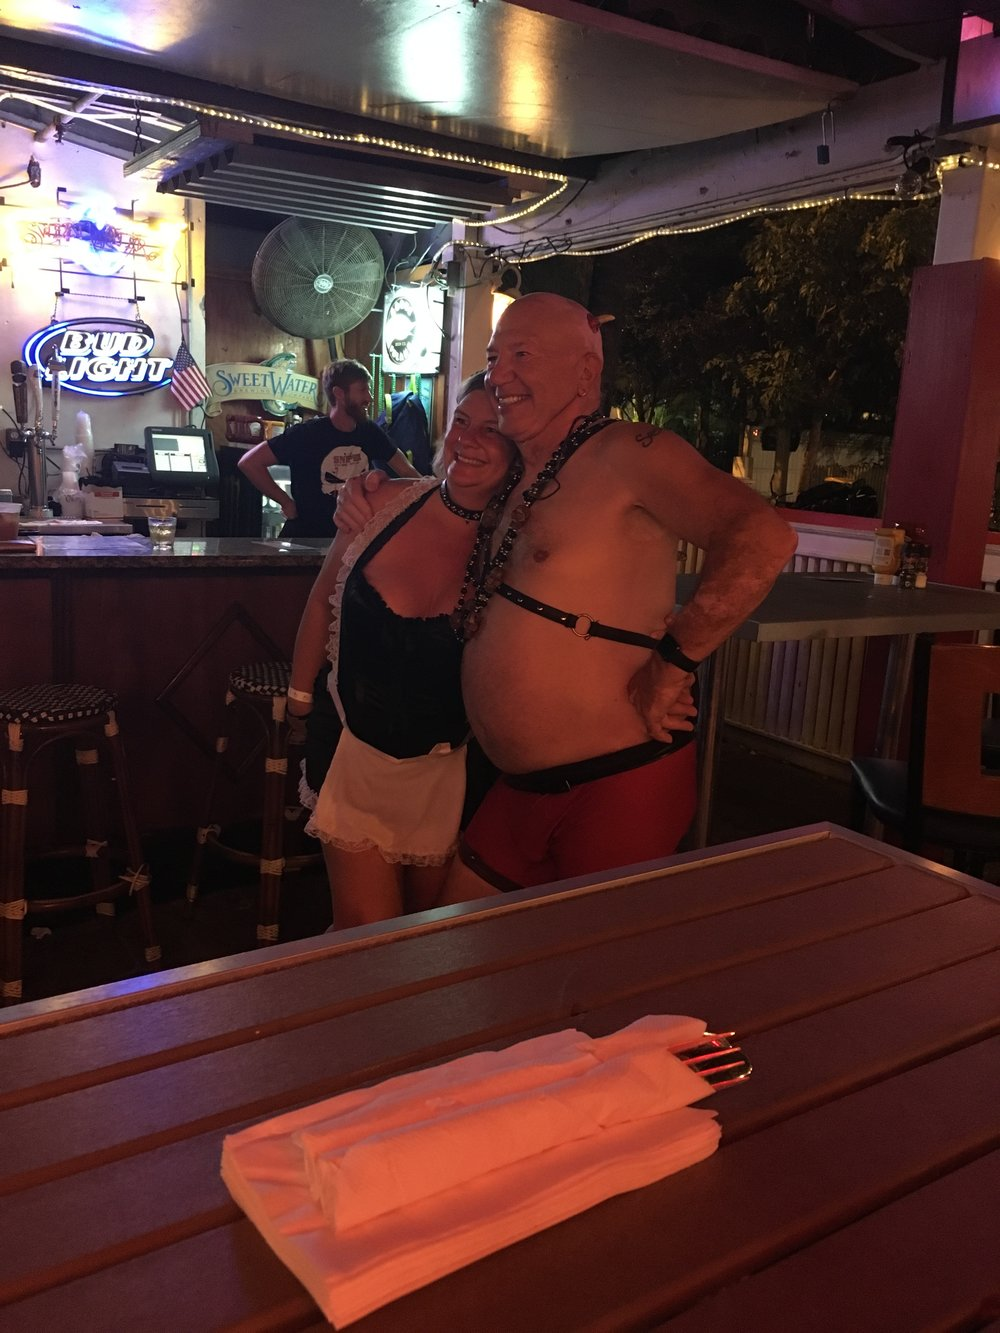 fantasy fest 2016 key west crowd shots pictures BDSM nudity